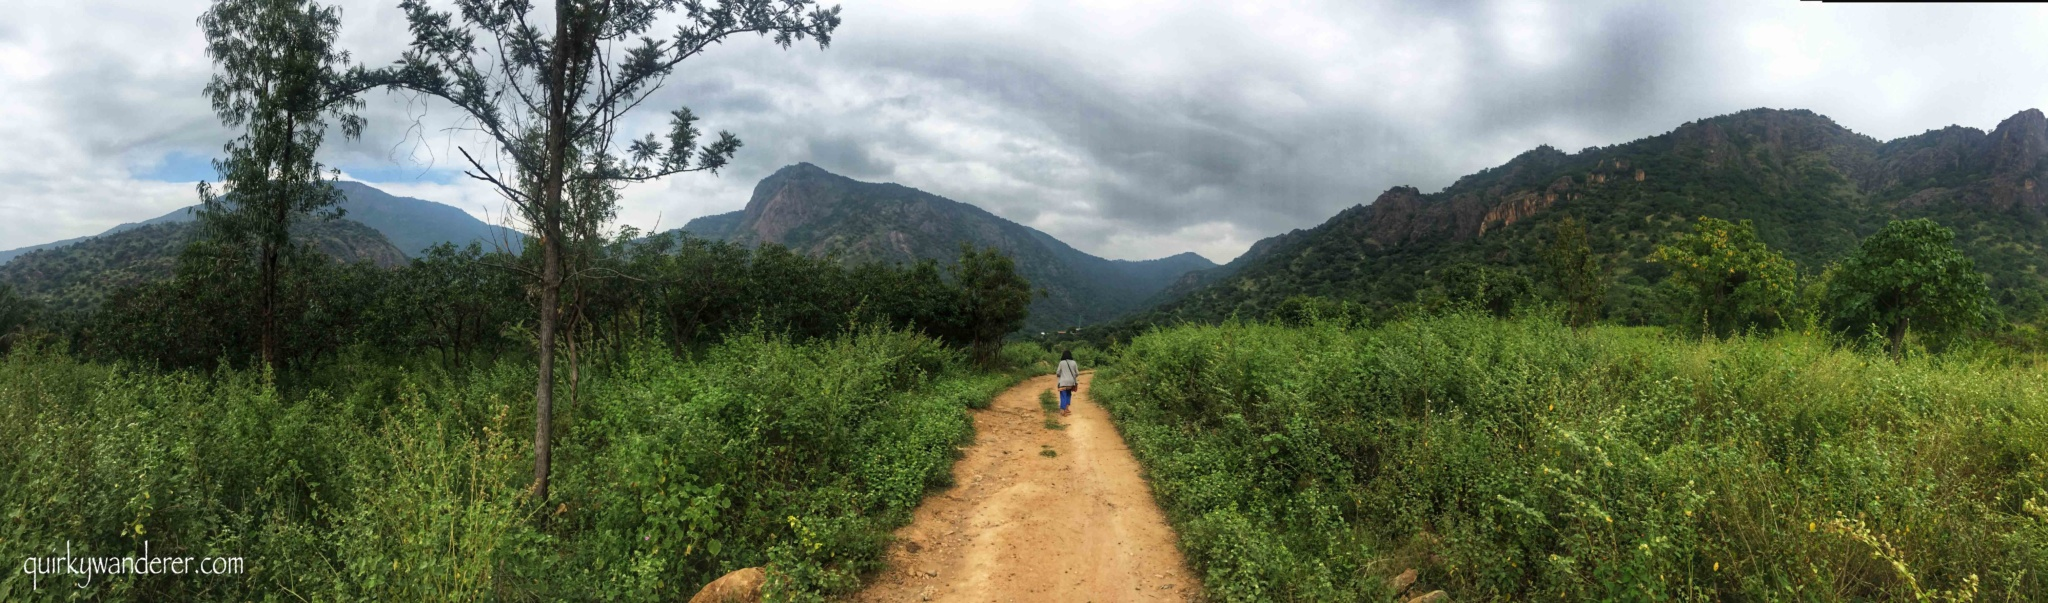 Kamarajar valley near Madurai is an offbeat getaway for those seeking serenity and quiet. This travelogue talks about an adventurous lesser known trek in Palani hills arranged by the Double Dutch resort.